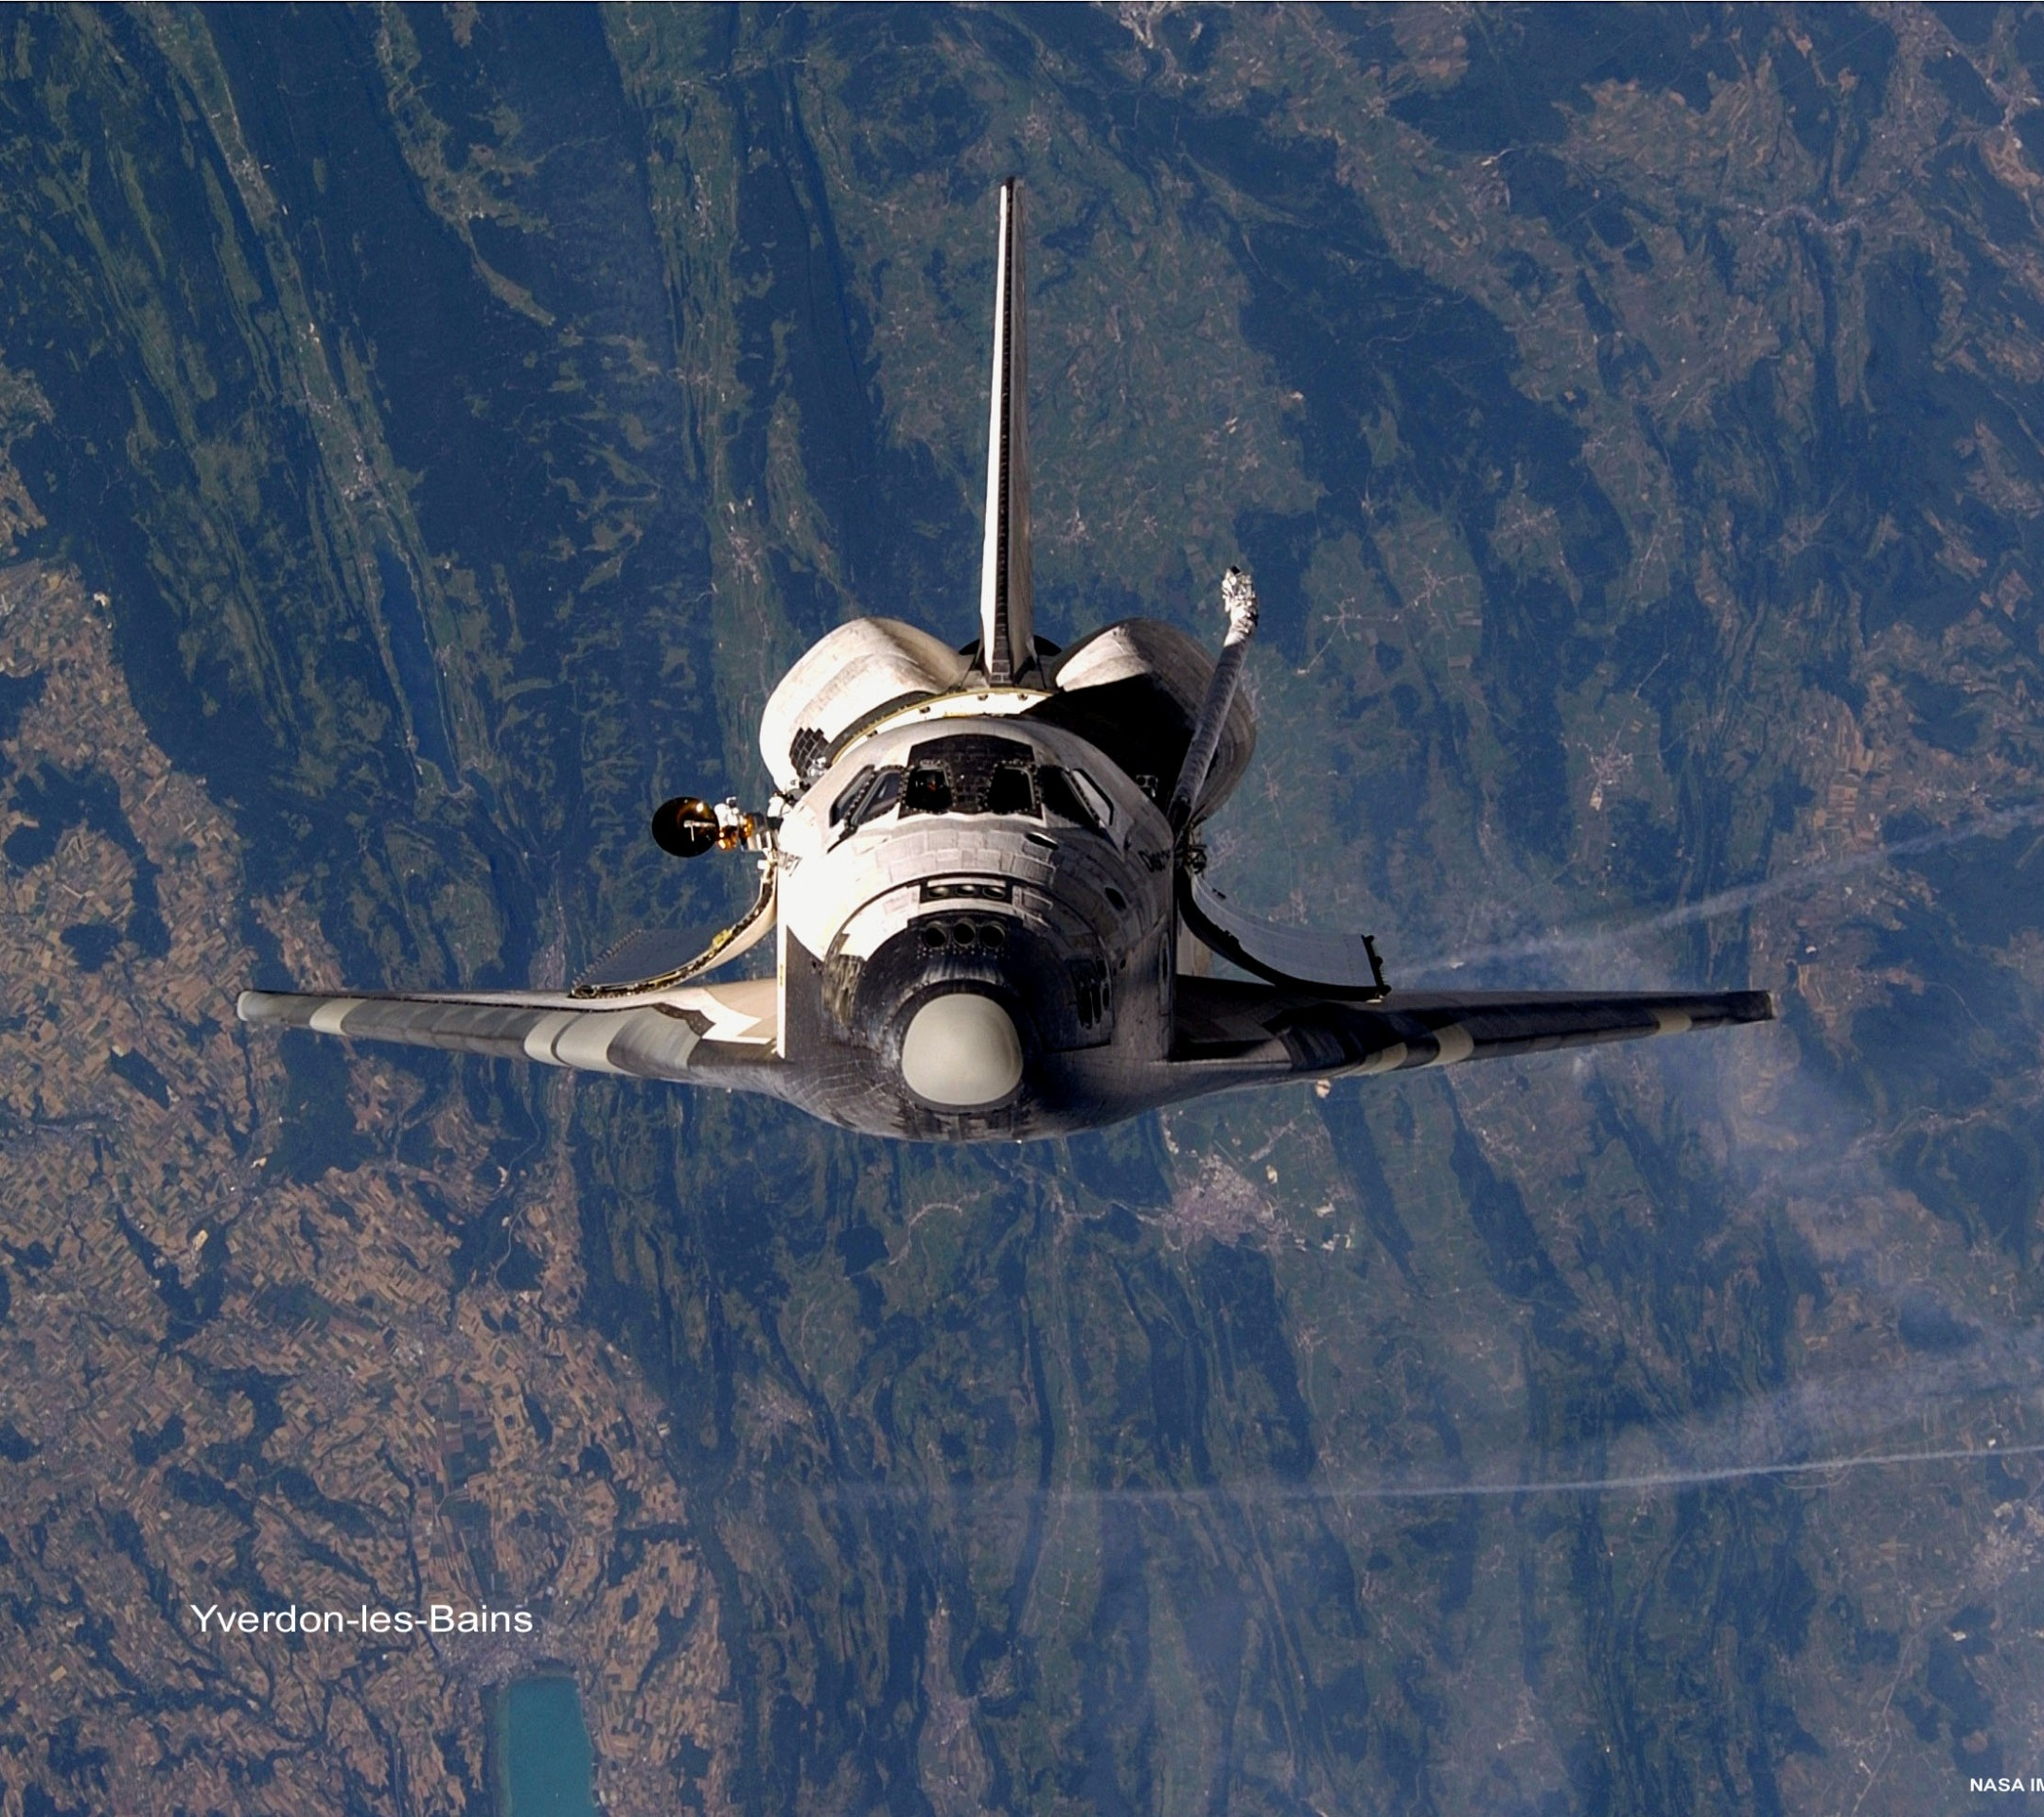 Space shuttle wallpaper 81 pictures - Space wallpaper 2160x1920 ...